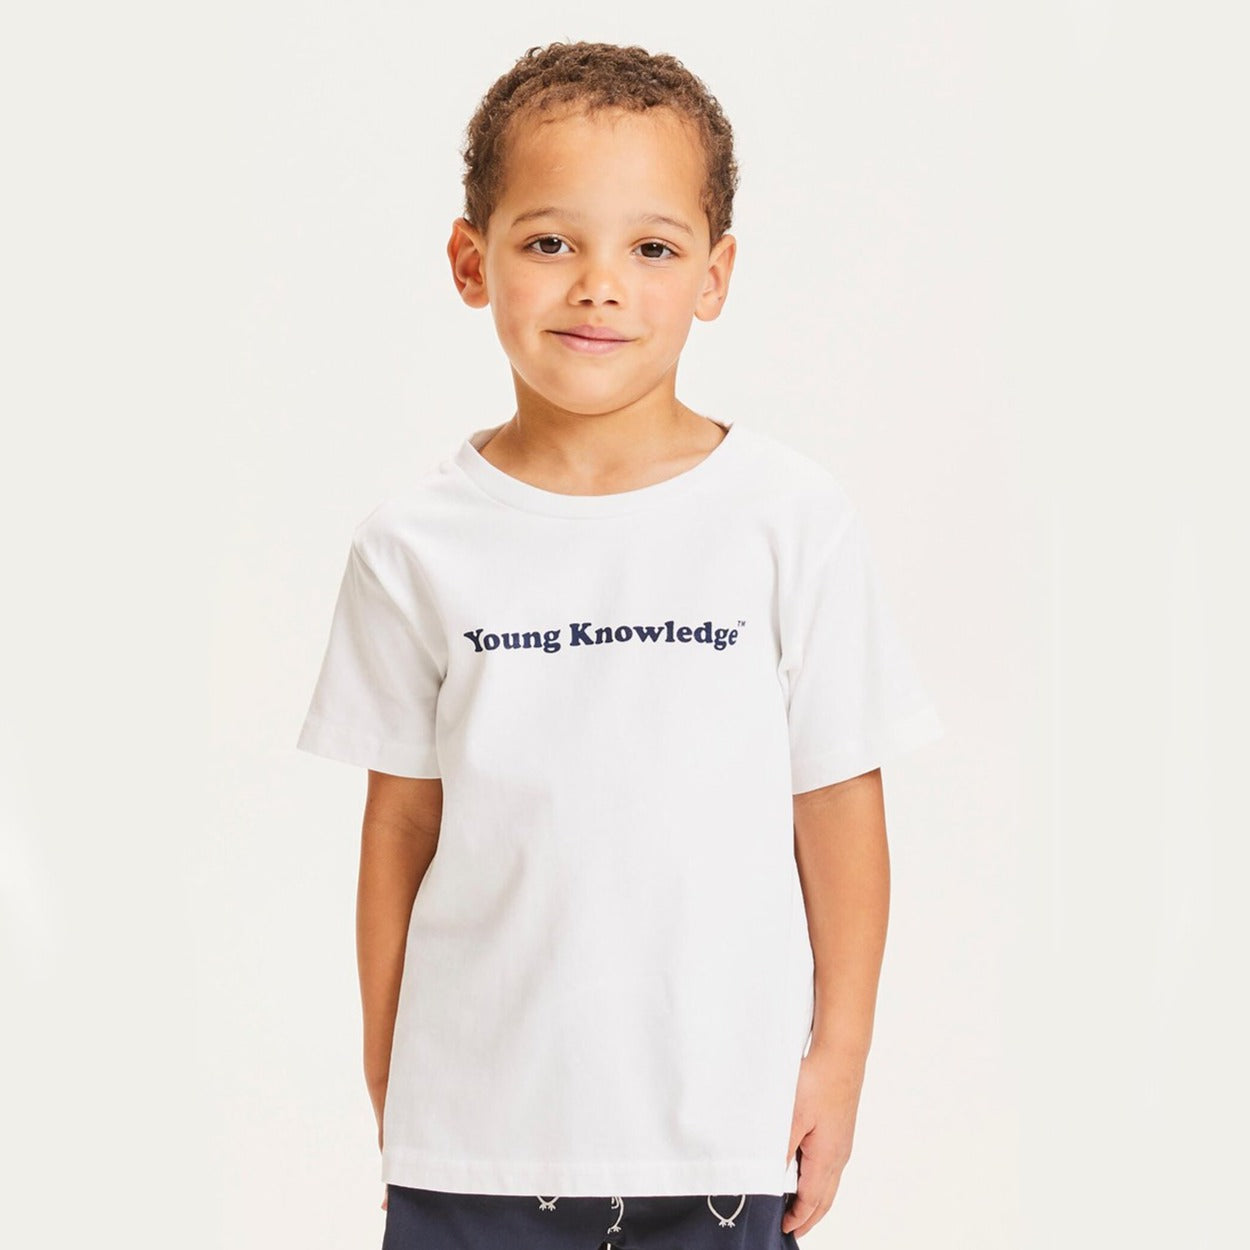 Knowledge Cotton flax young knowledge tee, bright white